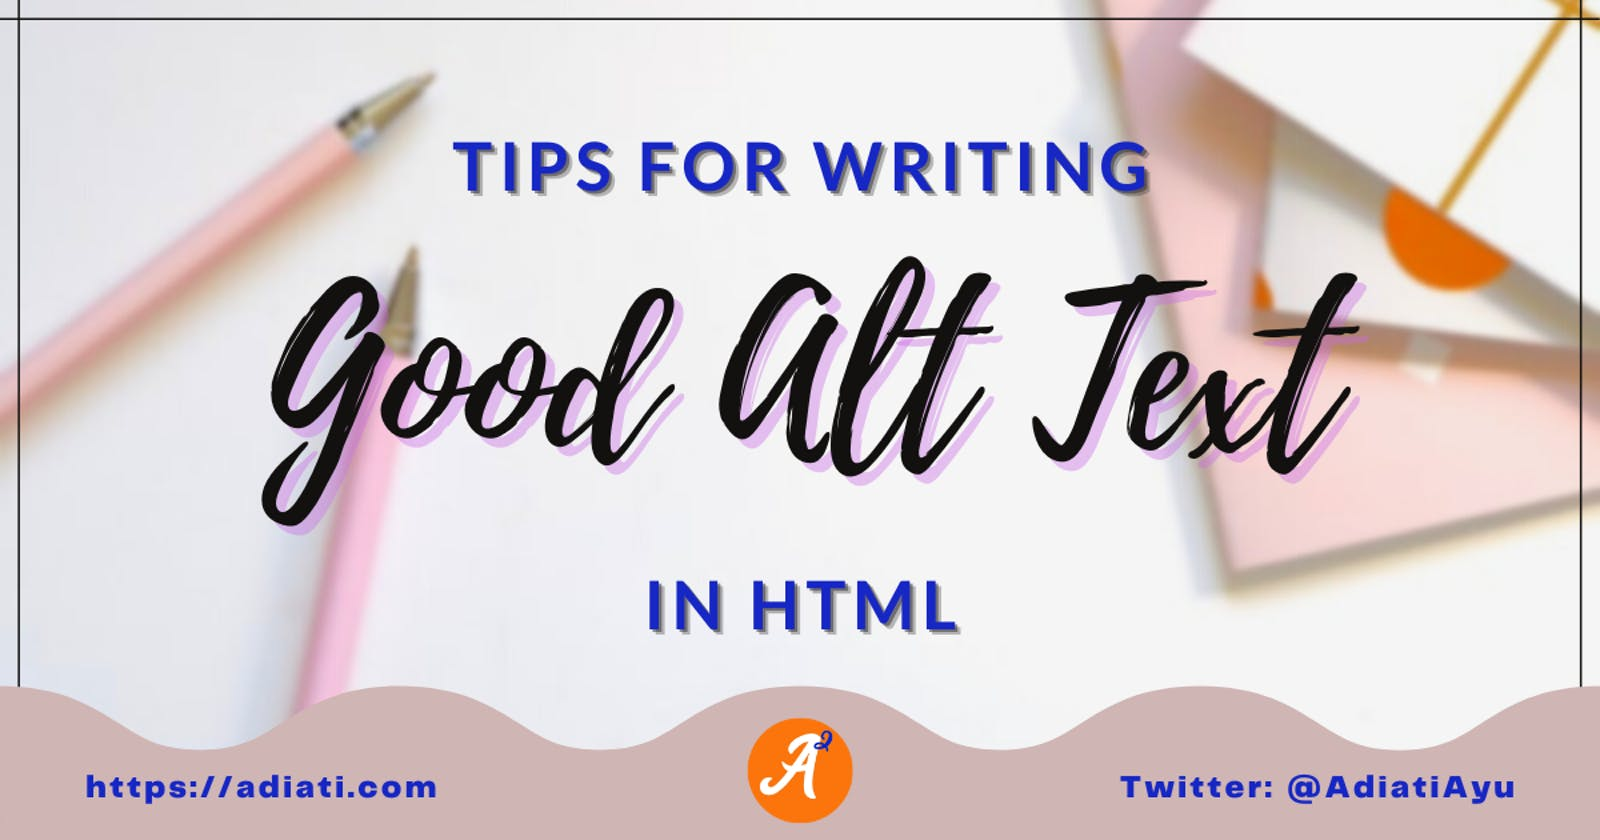 Tips For Writing Good Alt Text In HTML